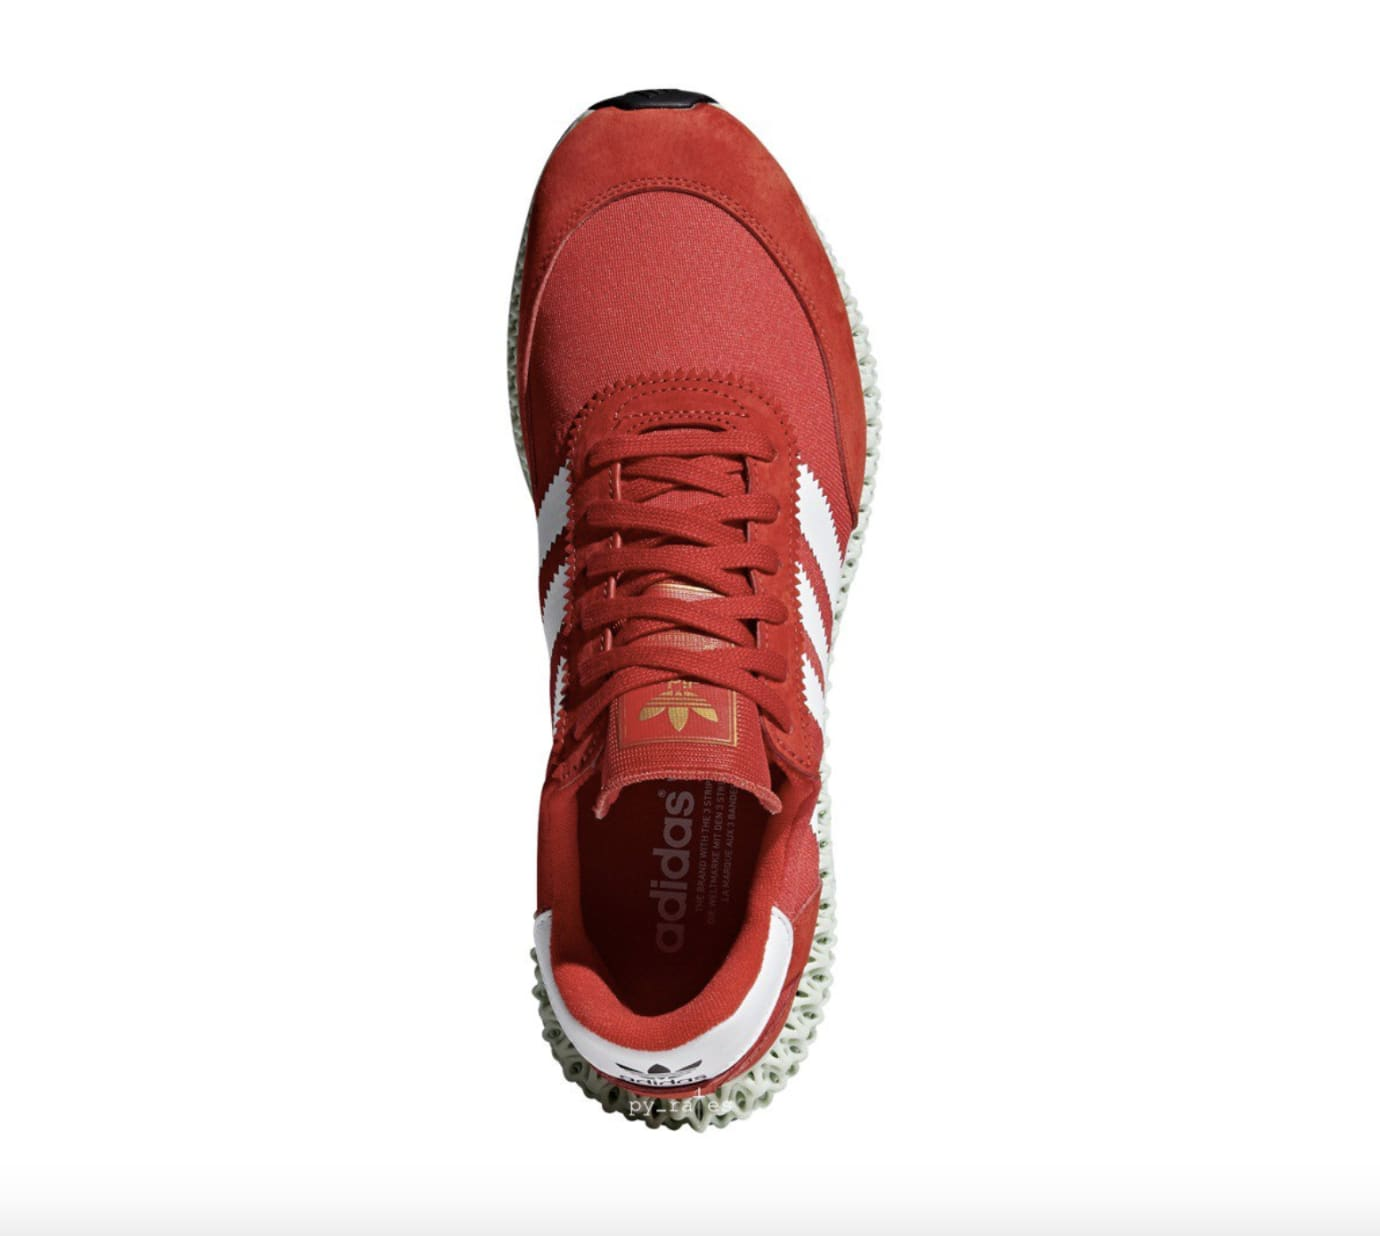 detailed look 3b114 20213 Adidas 4D-5923 RedWhite (Top)